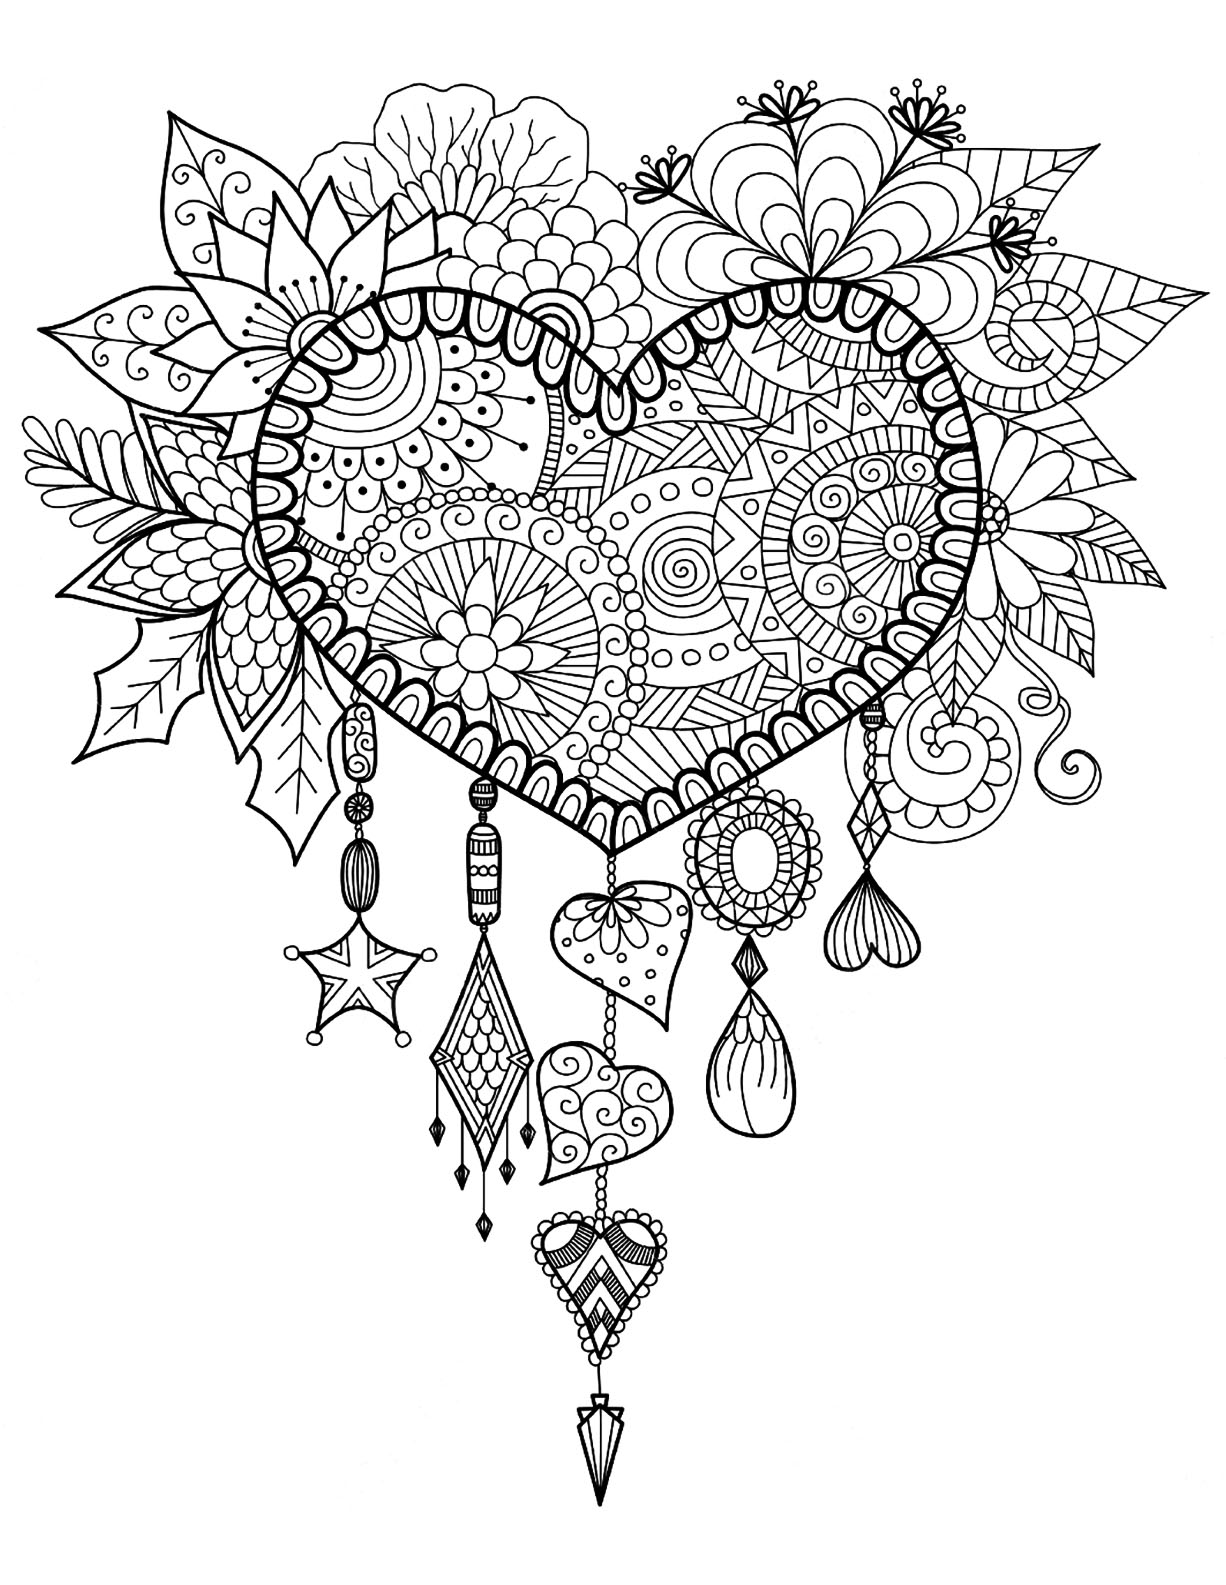 Dreamcatcher to print and color : heart